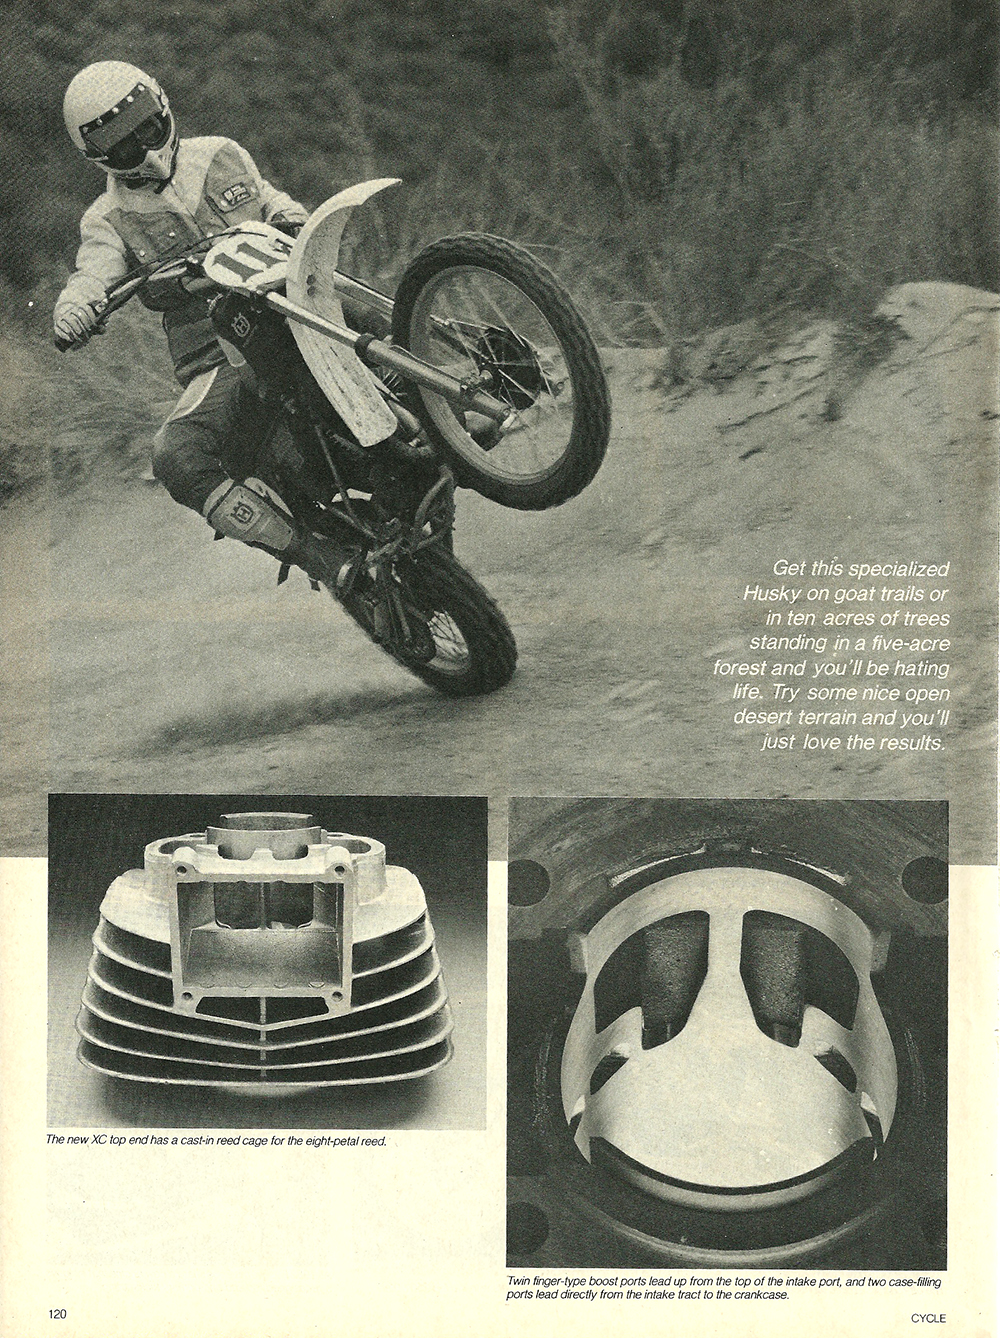 1982 Husqvarna 250 XC road test 4.jpg